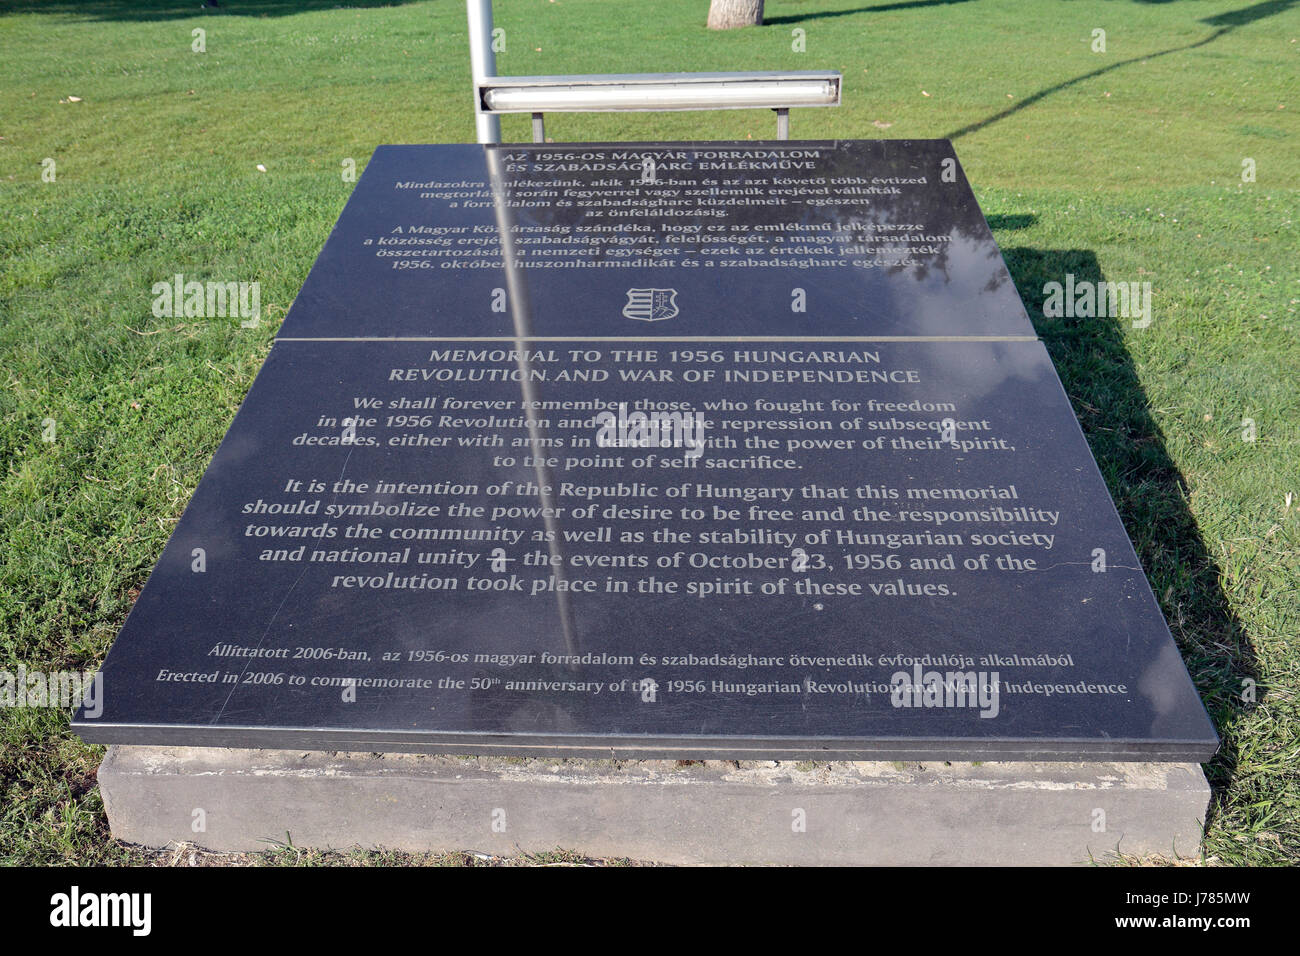 Memorial plaque to the 1956 Hungarian Revolution and War of Independence, Budapest, Hungary. - Stock Image